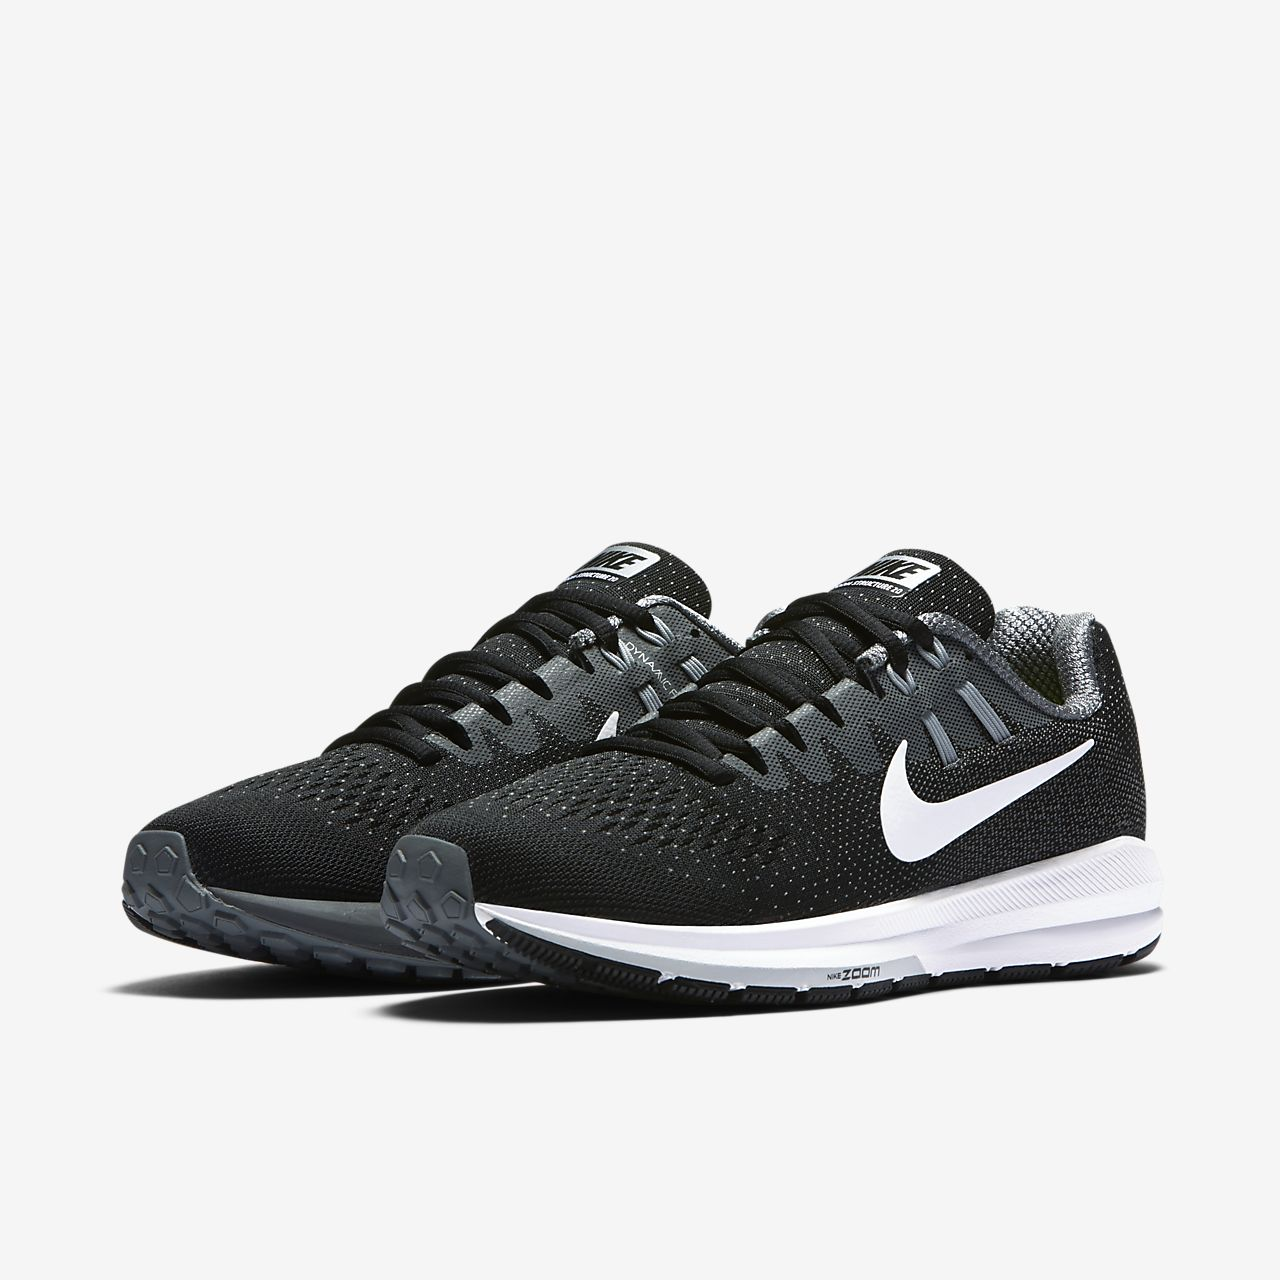 low priced 4b089 598ba Nike Air Zoom Structure 20 : Nike | Discounted Shoes ...